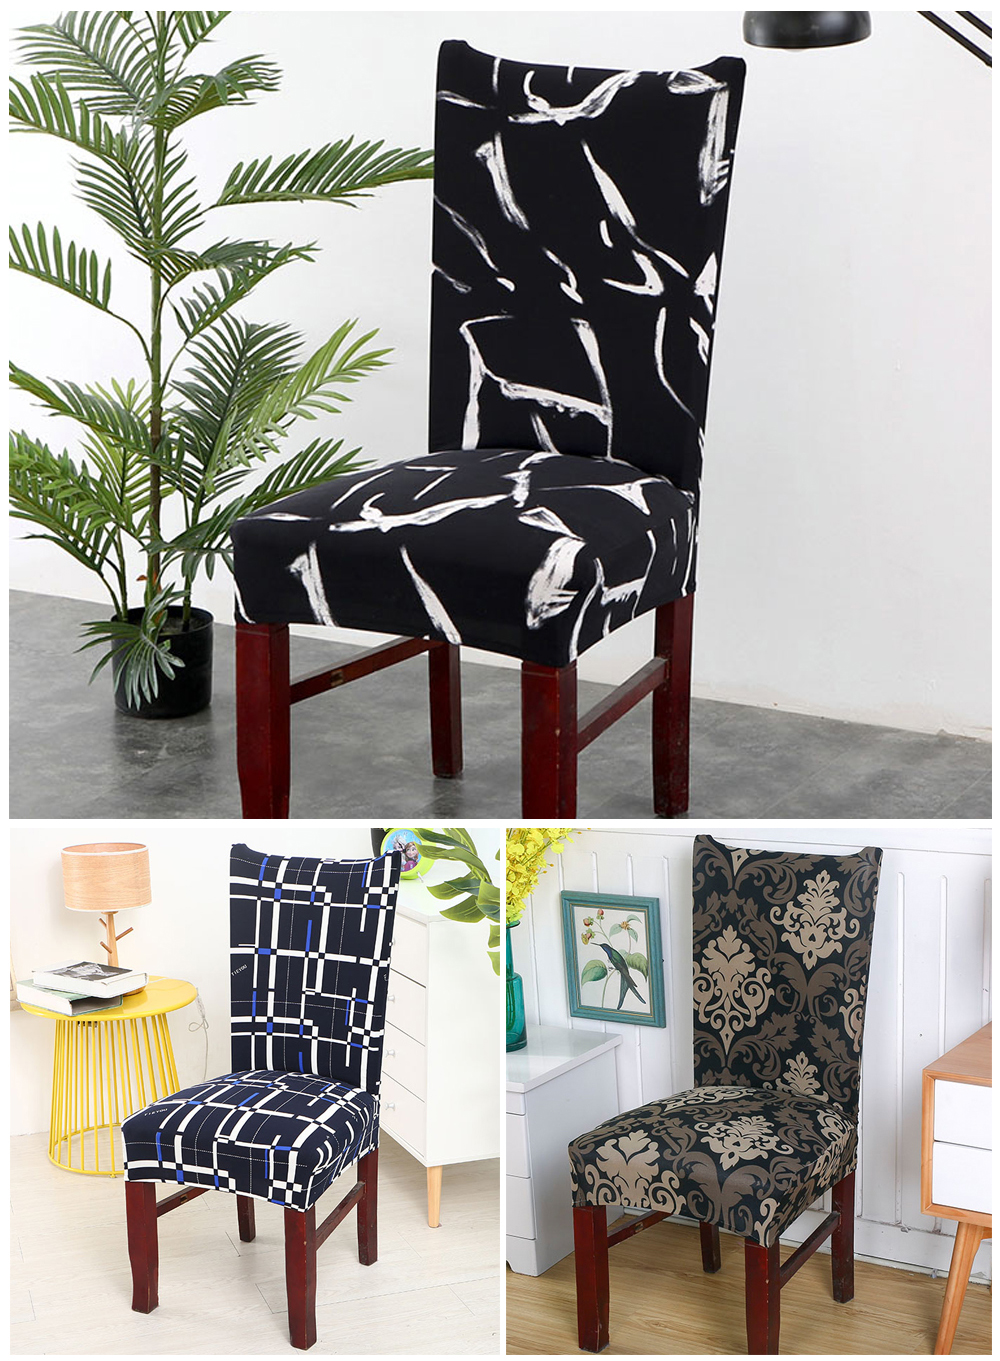 1246PCS Geometry Spandex Chair Cover Dining Washable slipcover for seat Elastic Kitchen Chair Covers Stretch Furniture Covers (5)